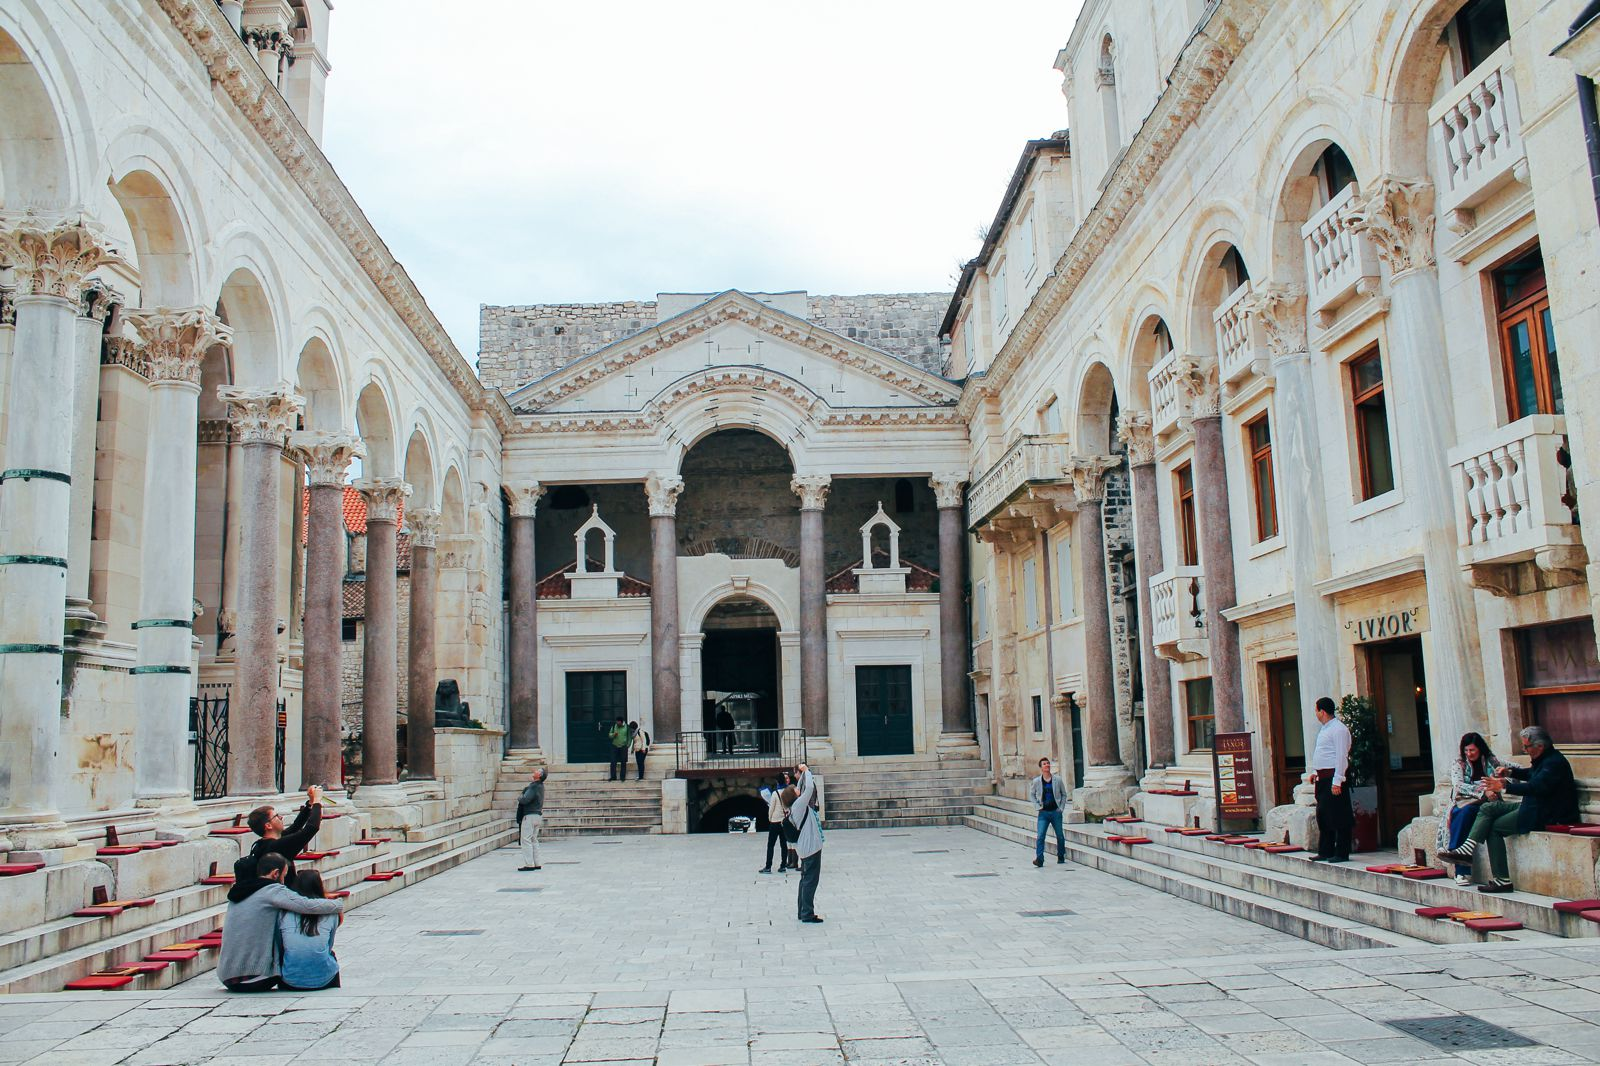 Diocletian's Palace, Croatia... Or As I like To Call It, Home To Daenerys Targaryen - The Mother Of Dragons! (37)